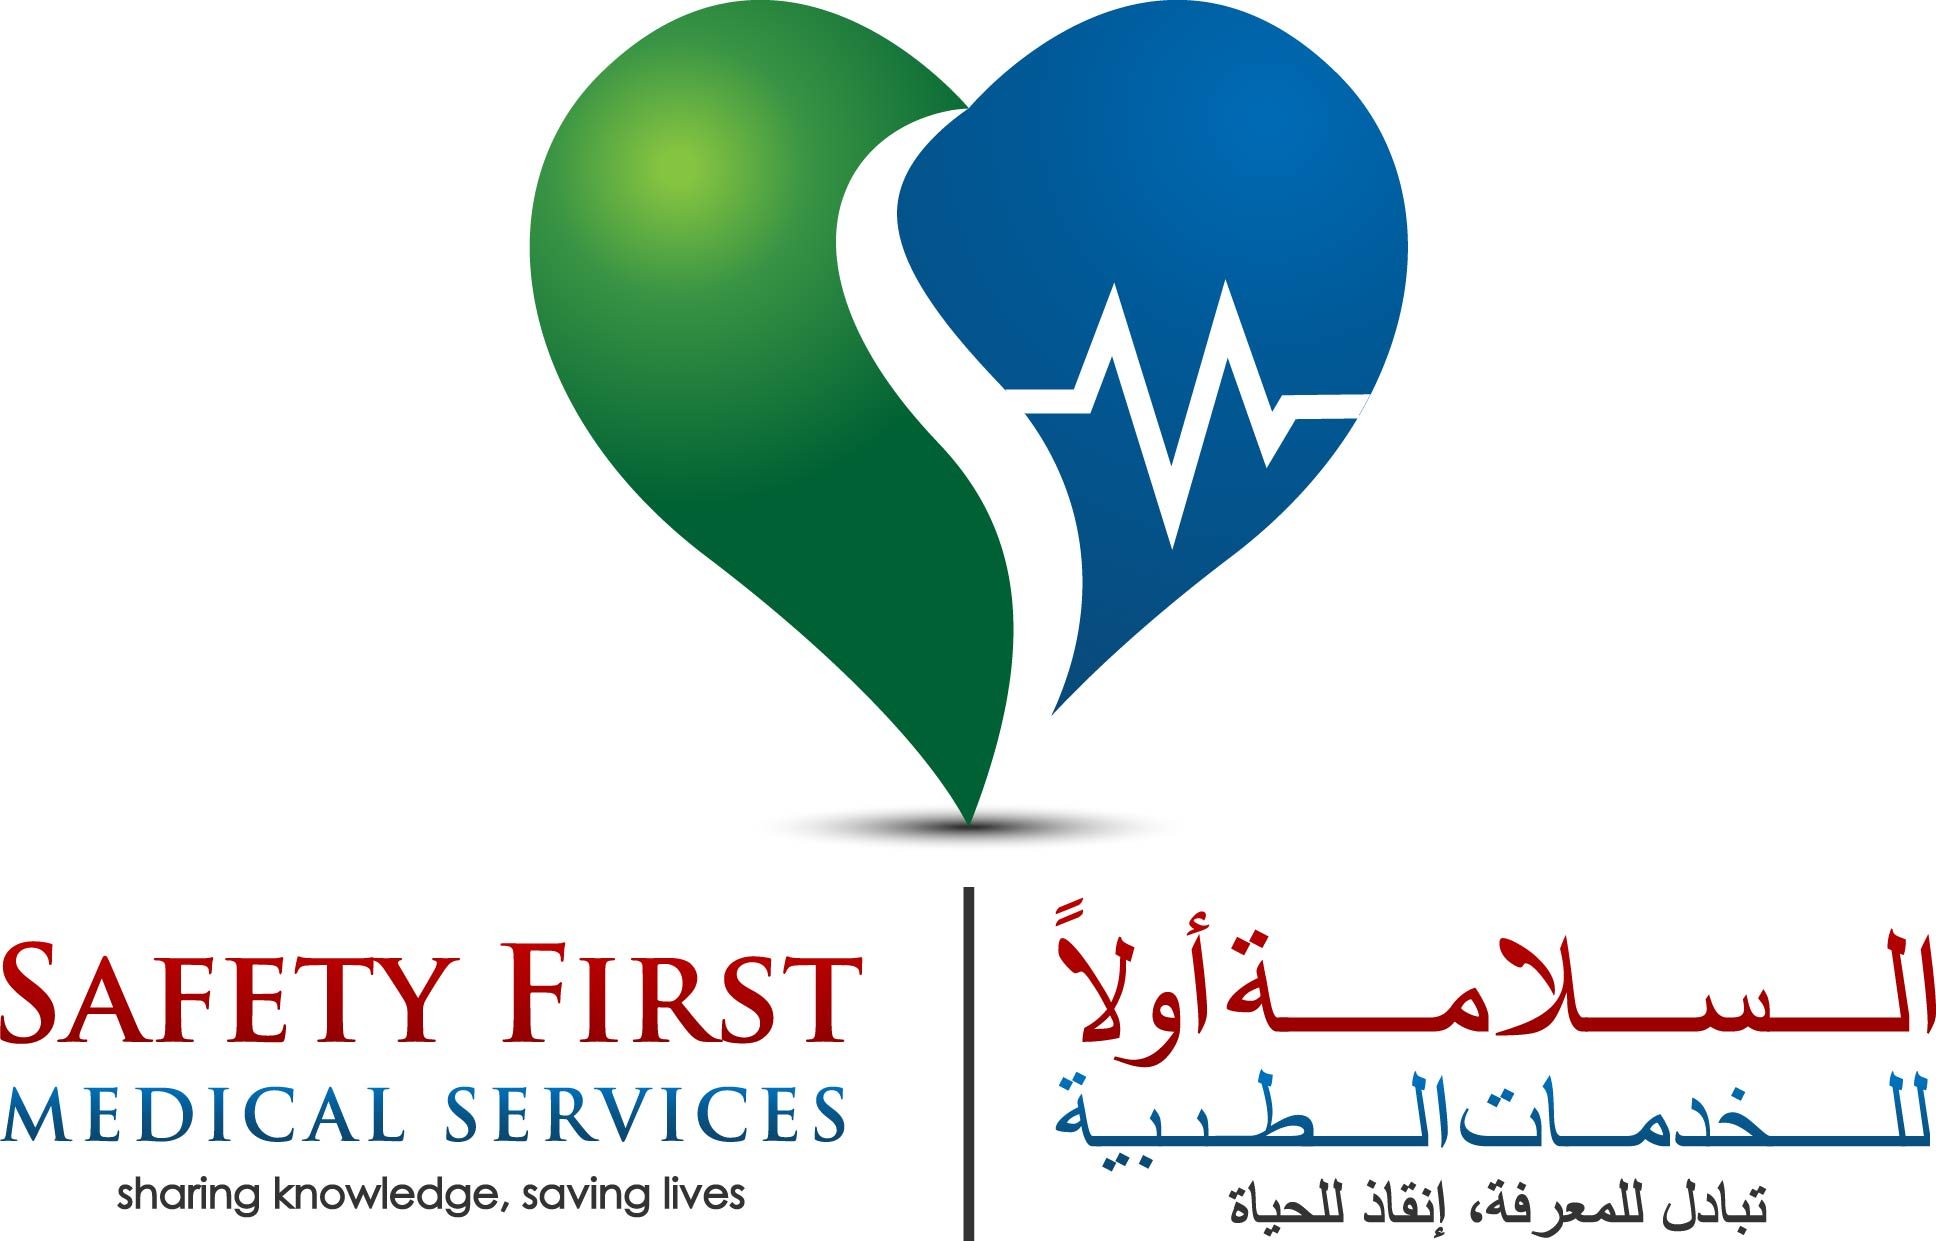 Safety First Medical Services Logo